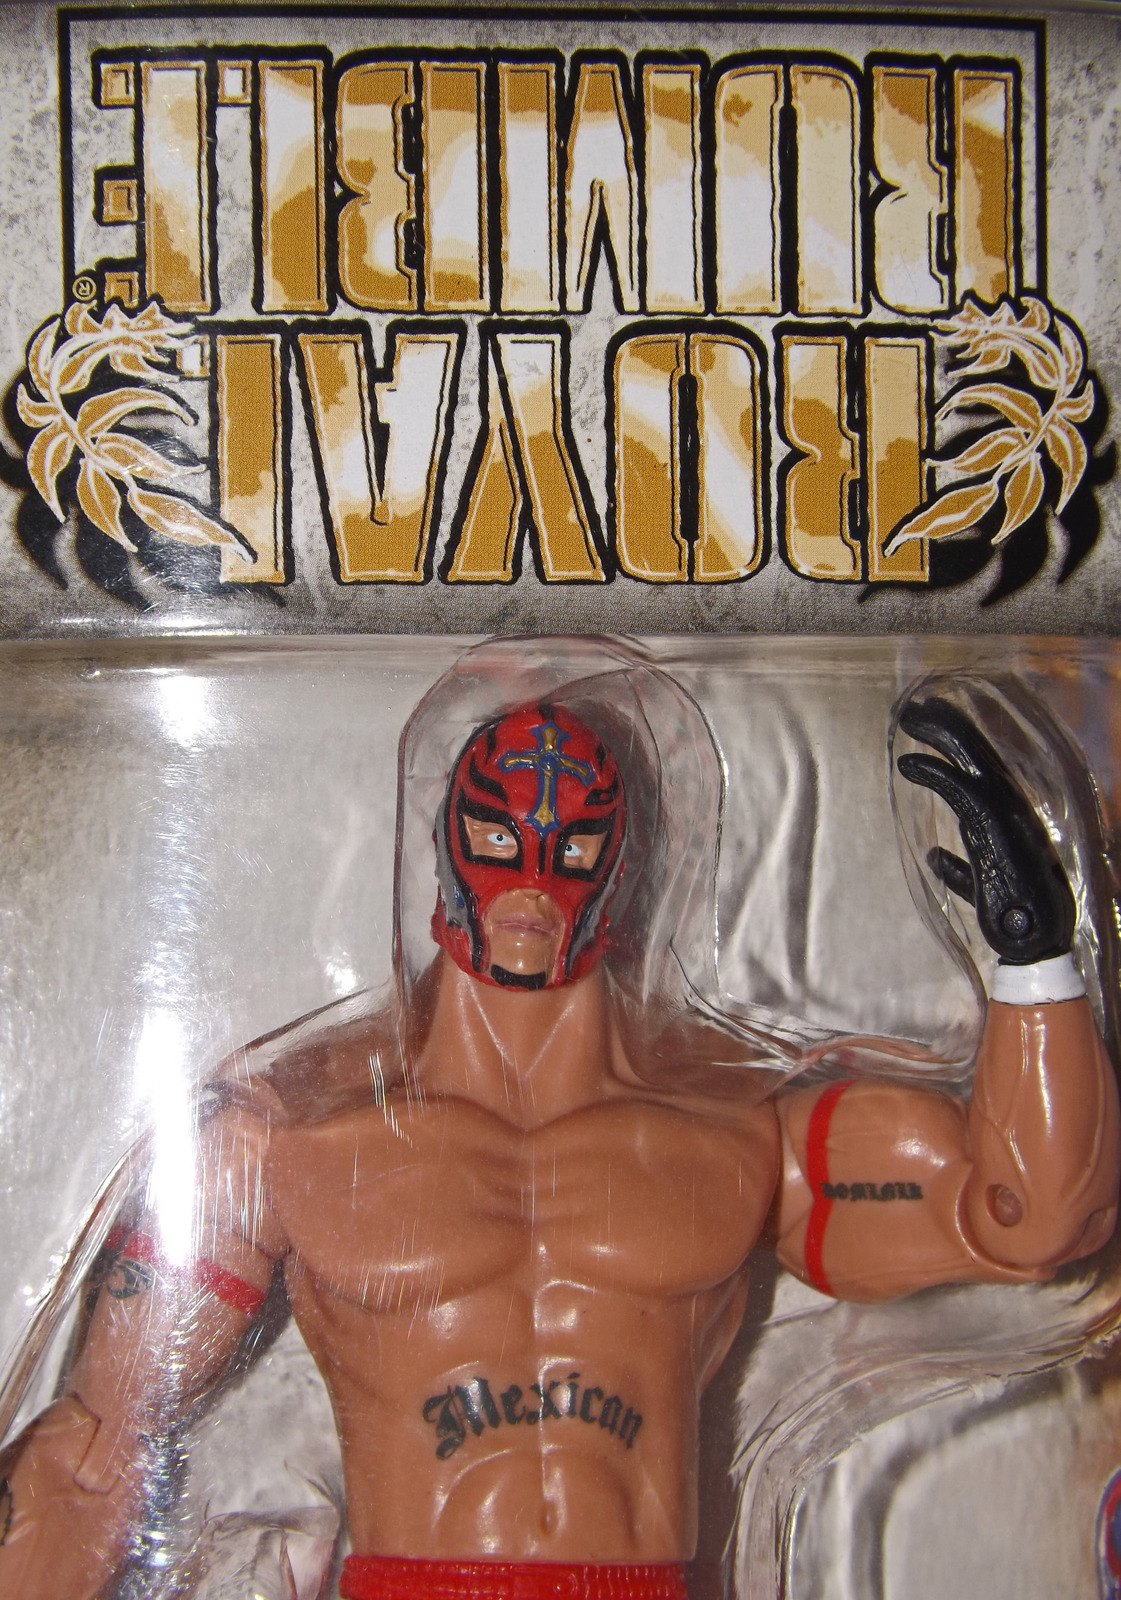 Primary image for 2006 WWE, Rey Mysterio, Royal Rumble, Error Packaging